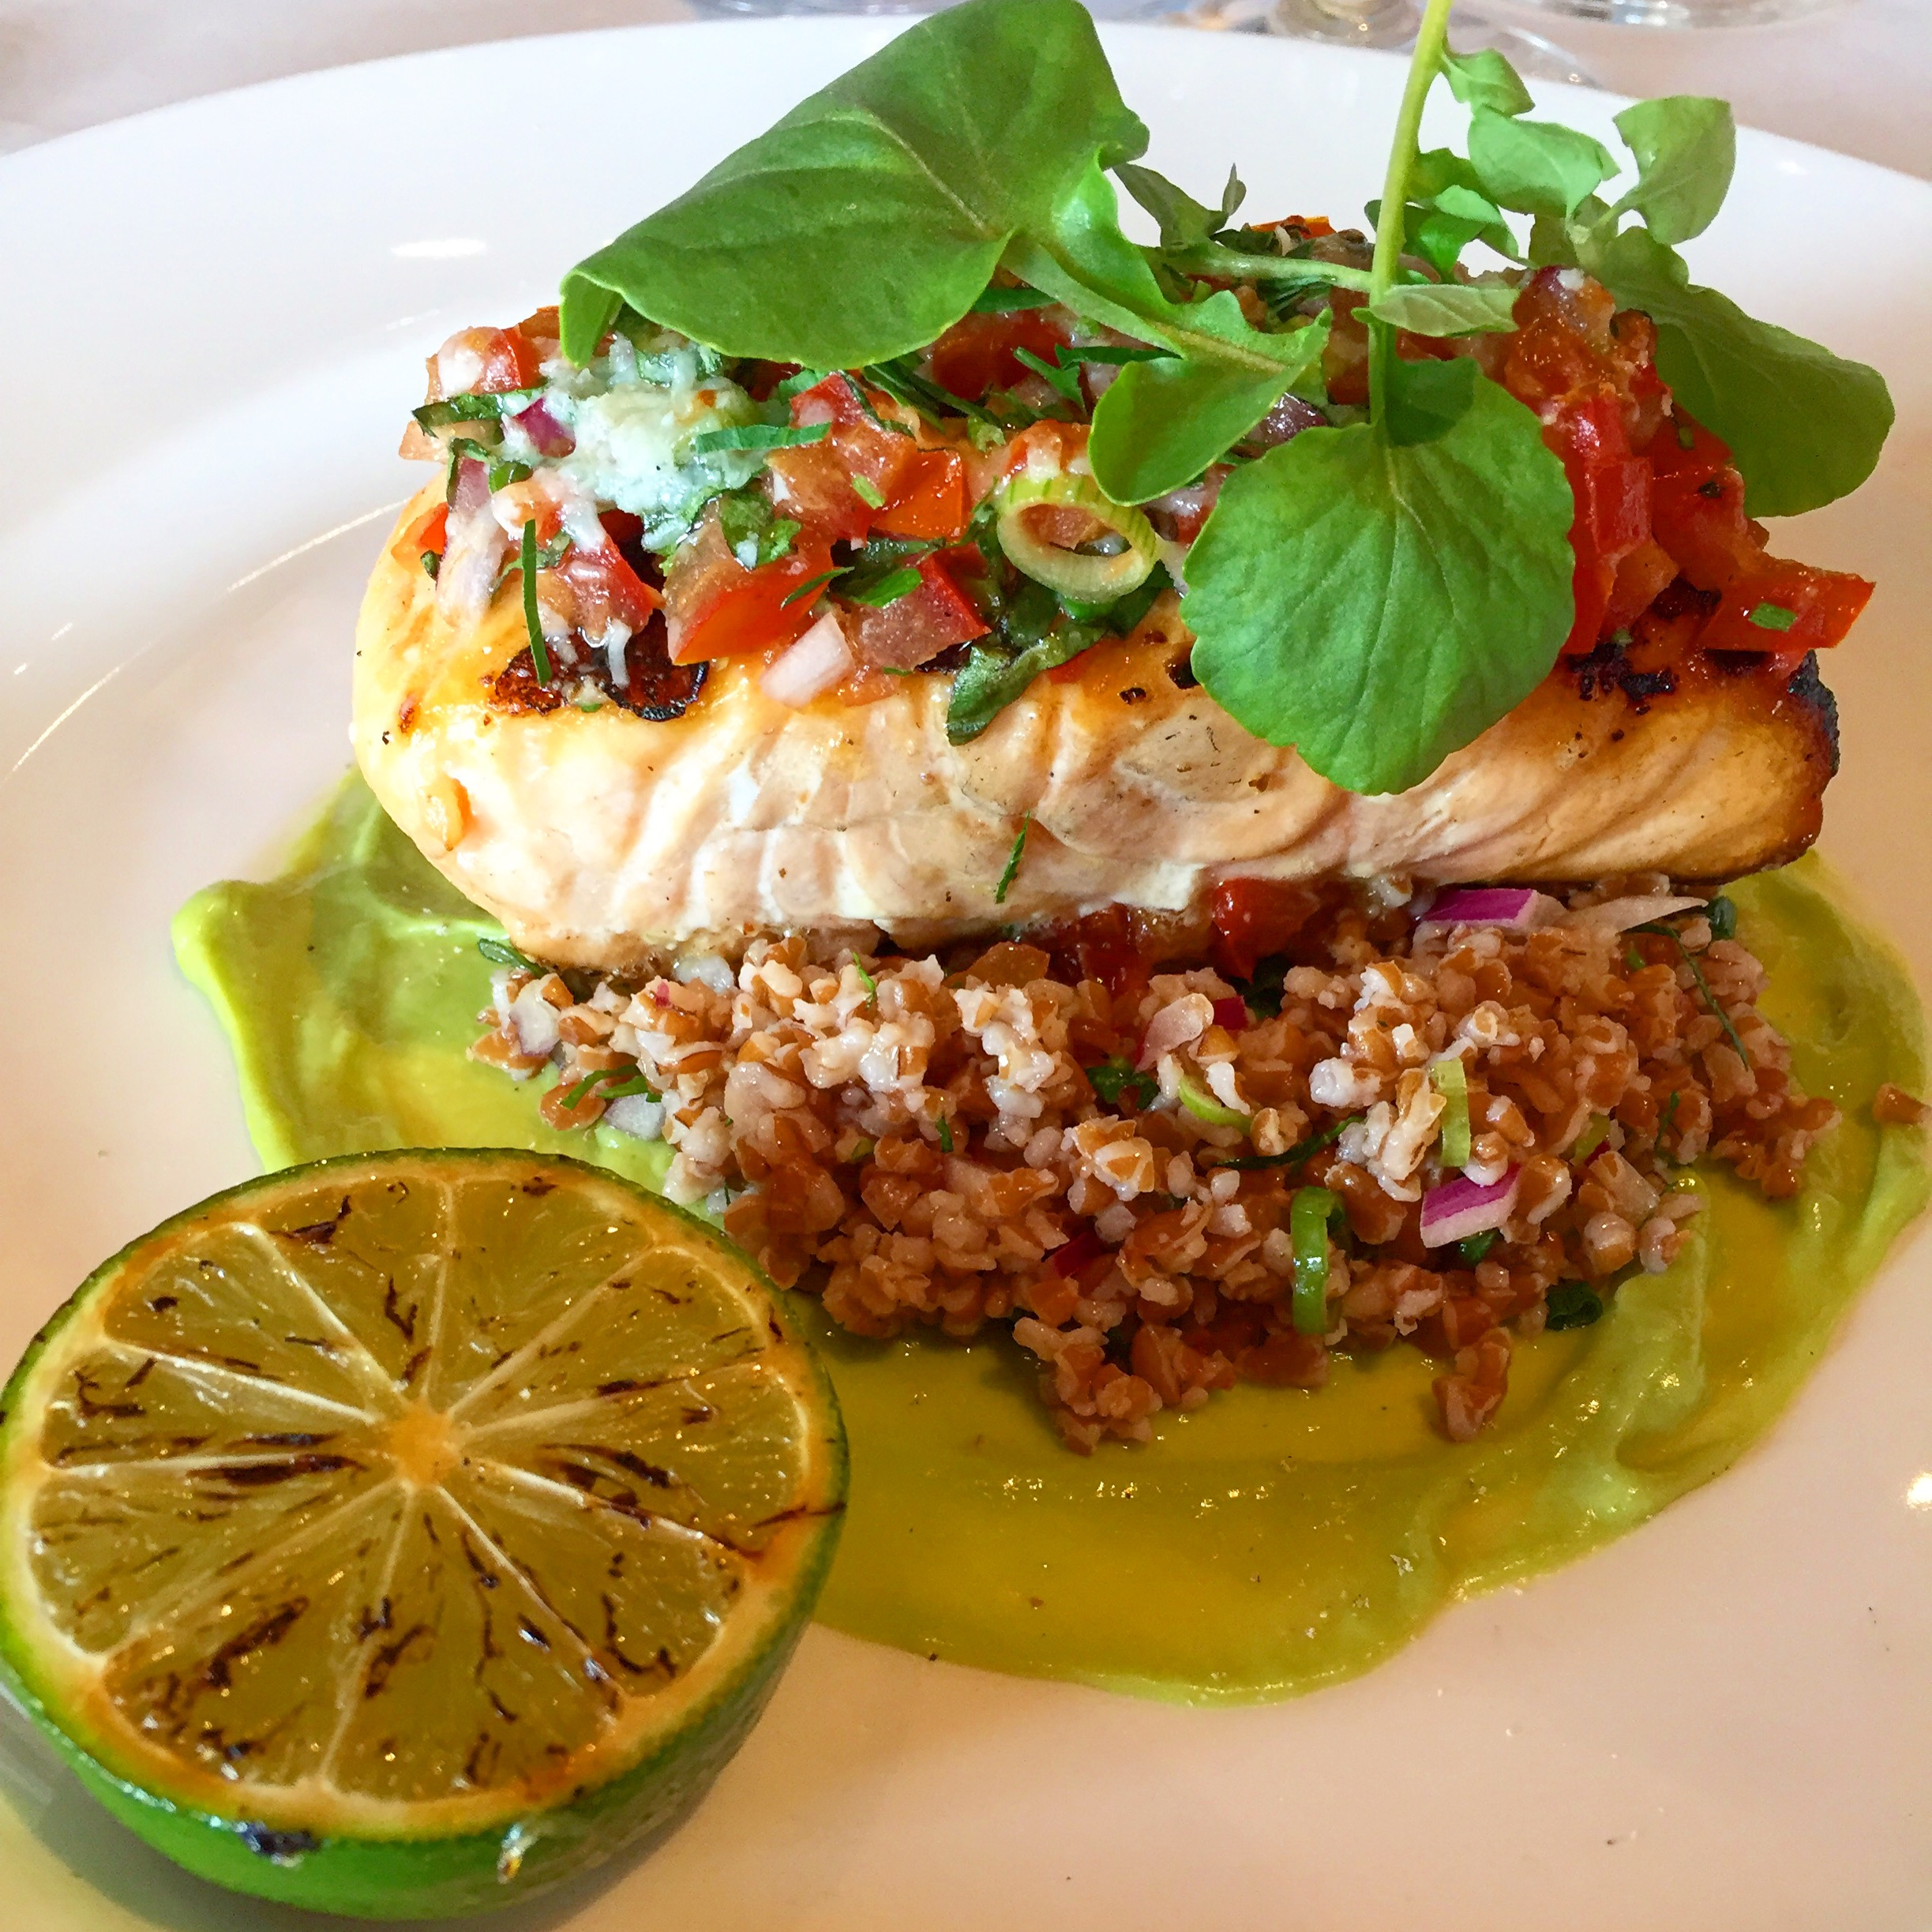 The  Salmon  dish: a perfectly cooked fillet of salmon with a tomato and parmesan crust on a bed of bulgar wheat and smear of avocado.  This was one of my favourite and most interesting bites in Bermuda.